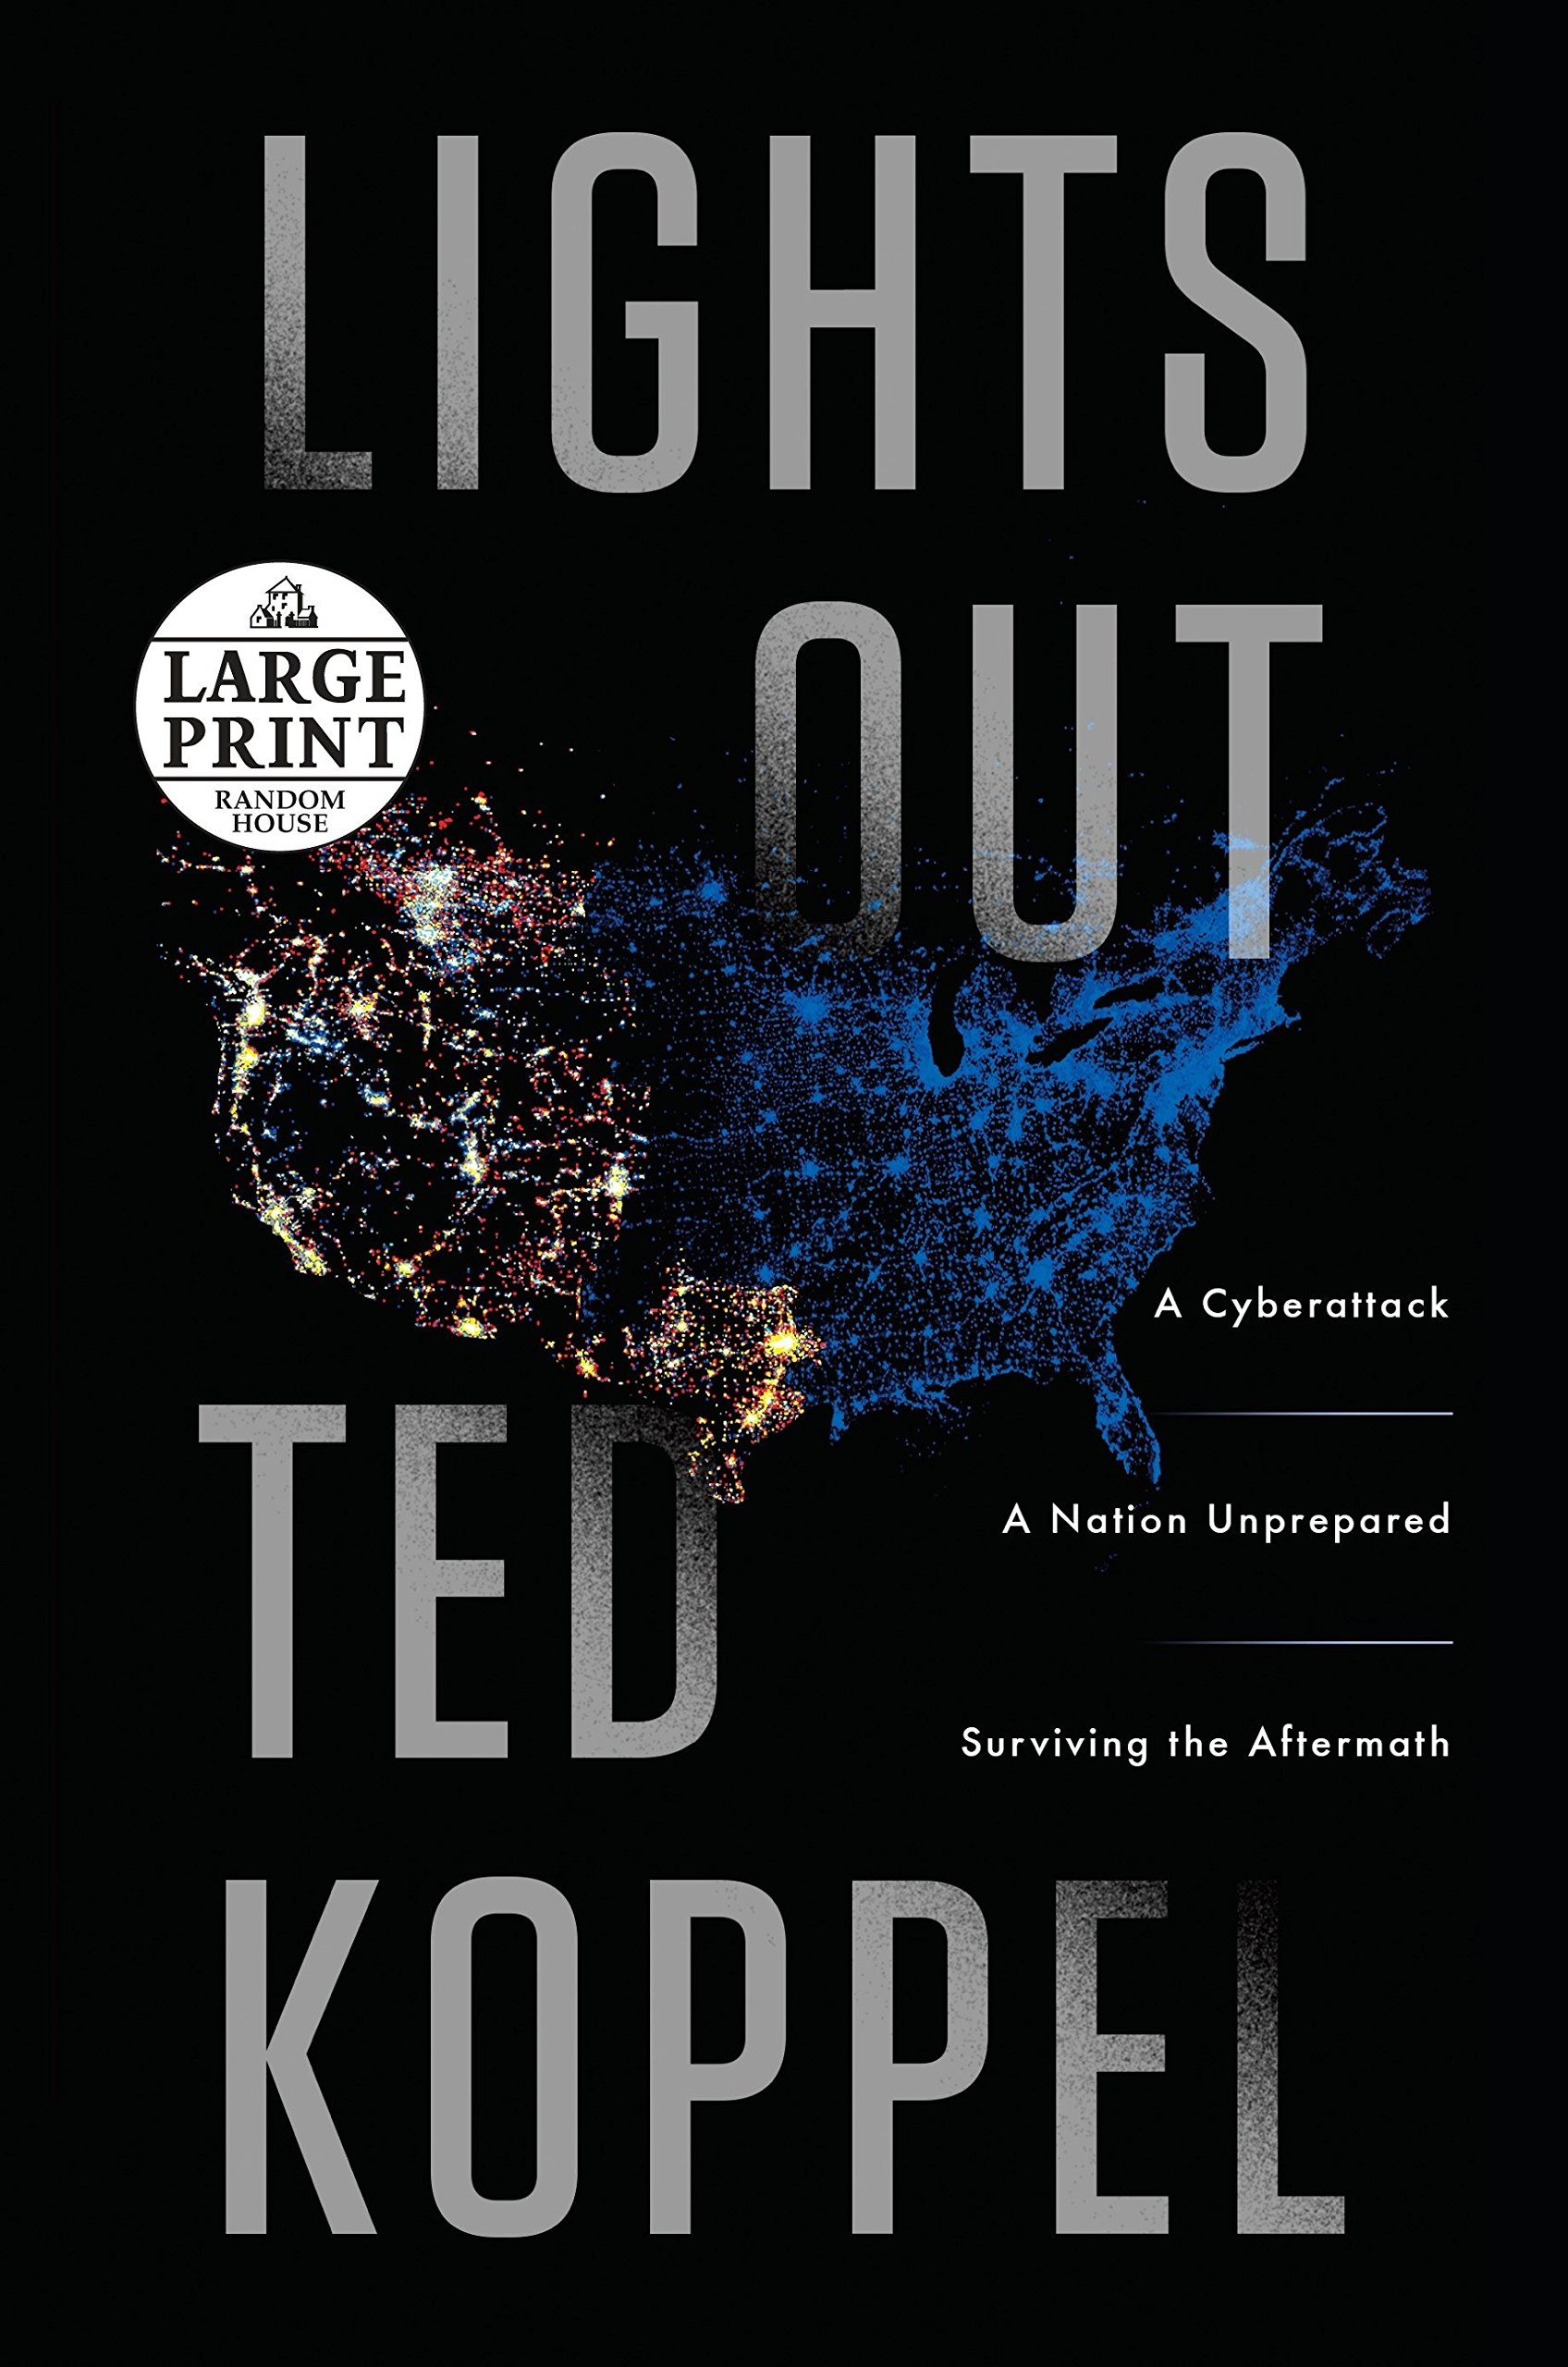 Lights Out: A Cyberattack, A Nation Unprepared, Surviving the Aftermath (Random House Large Print) PDF ePub fb2 ebook